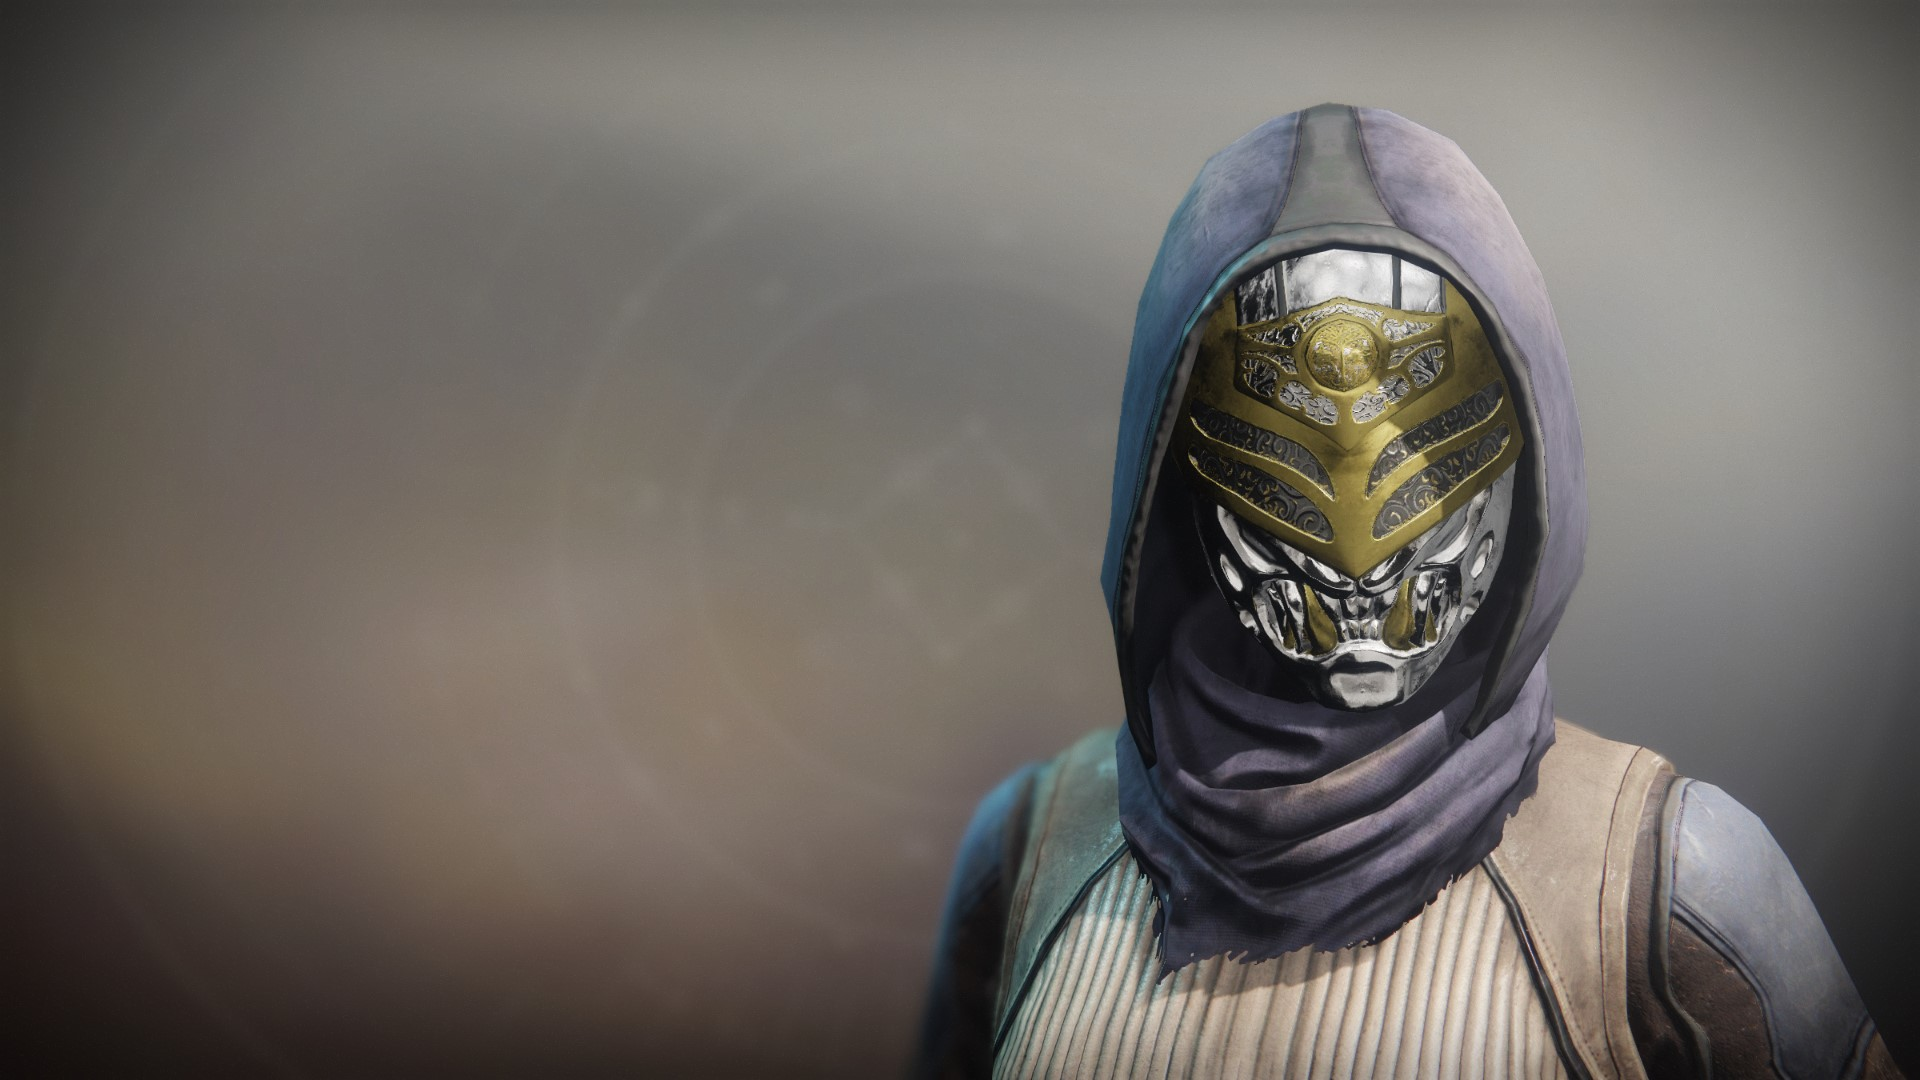 An in-game render of the Iron Truage Casque.